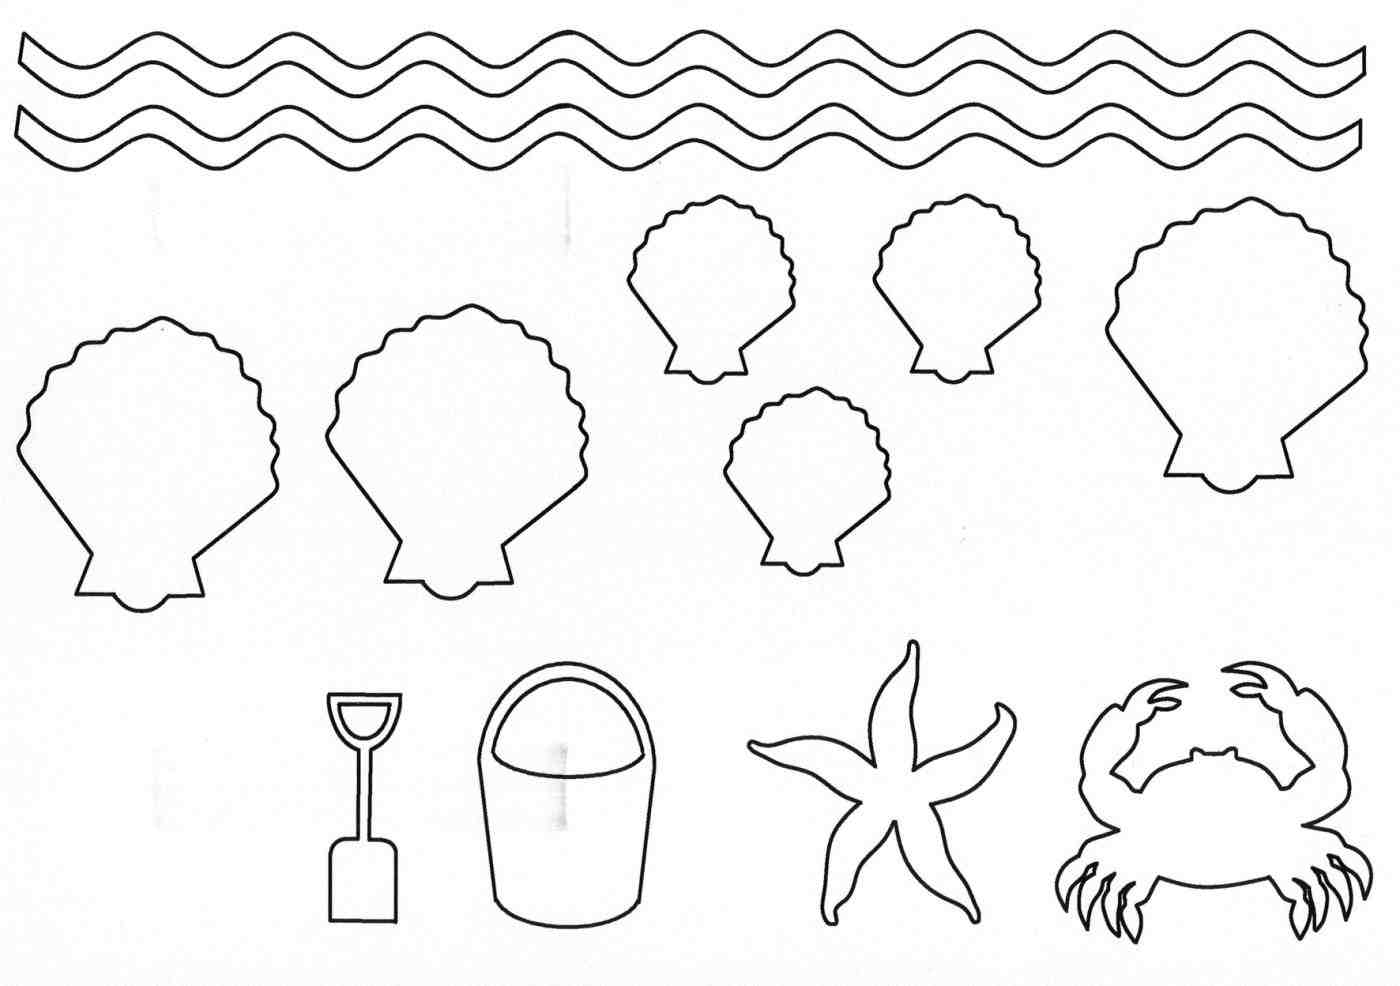 1400x986 Px Image How To Draw Worksheets For The Young Artist Printable How